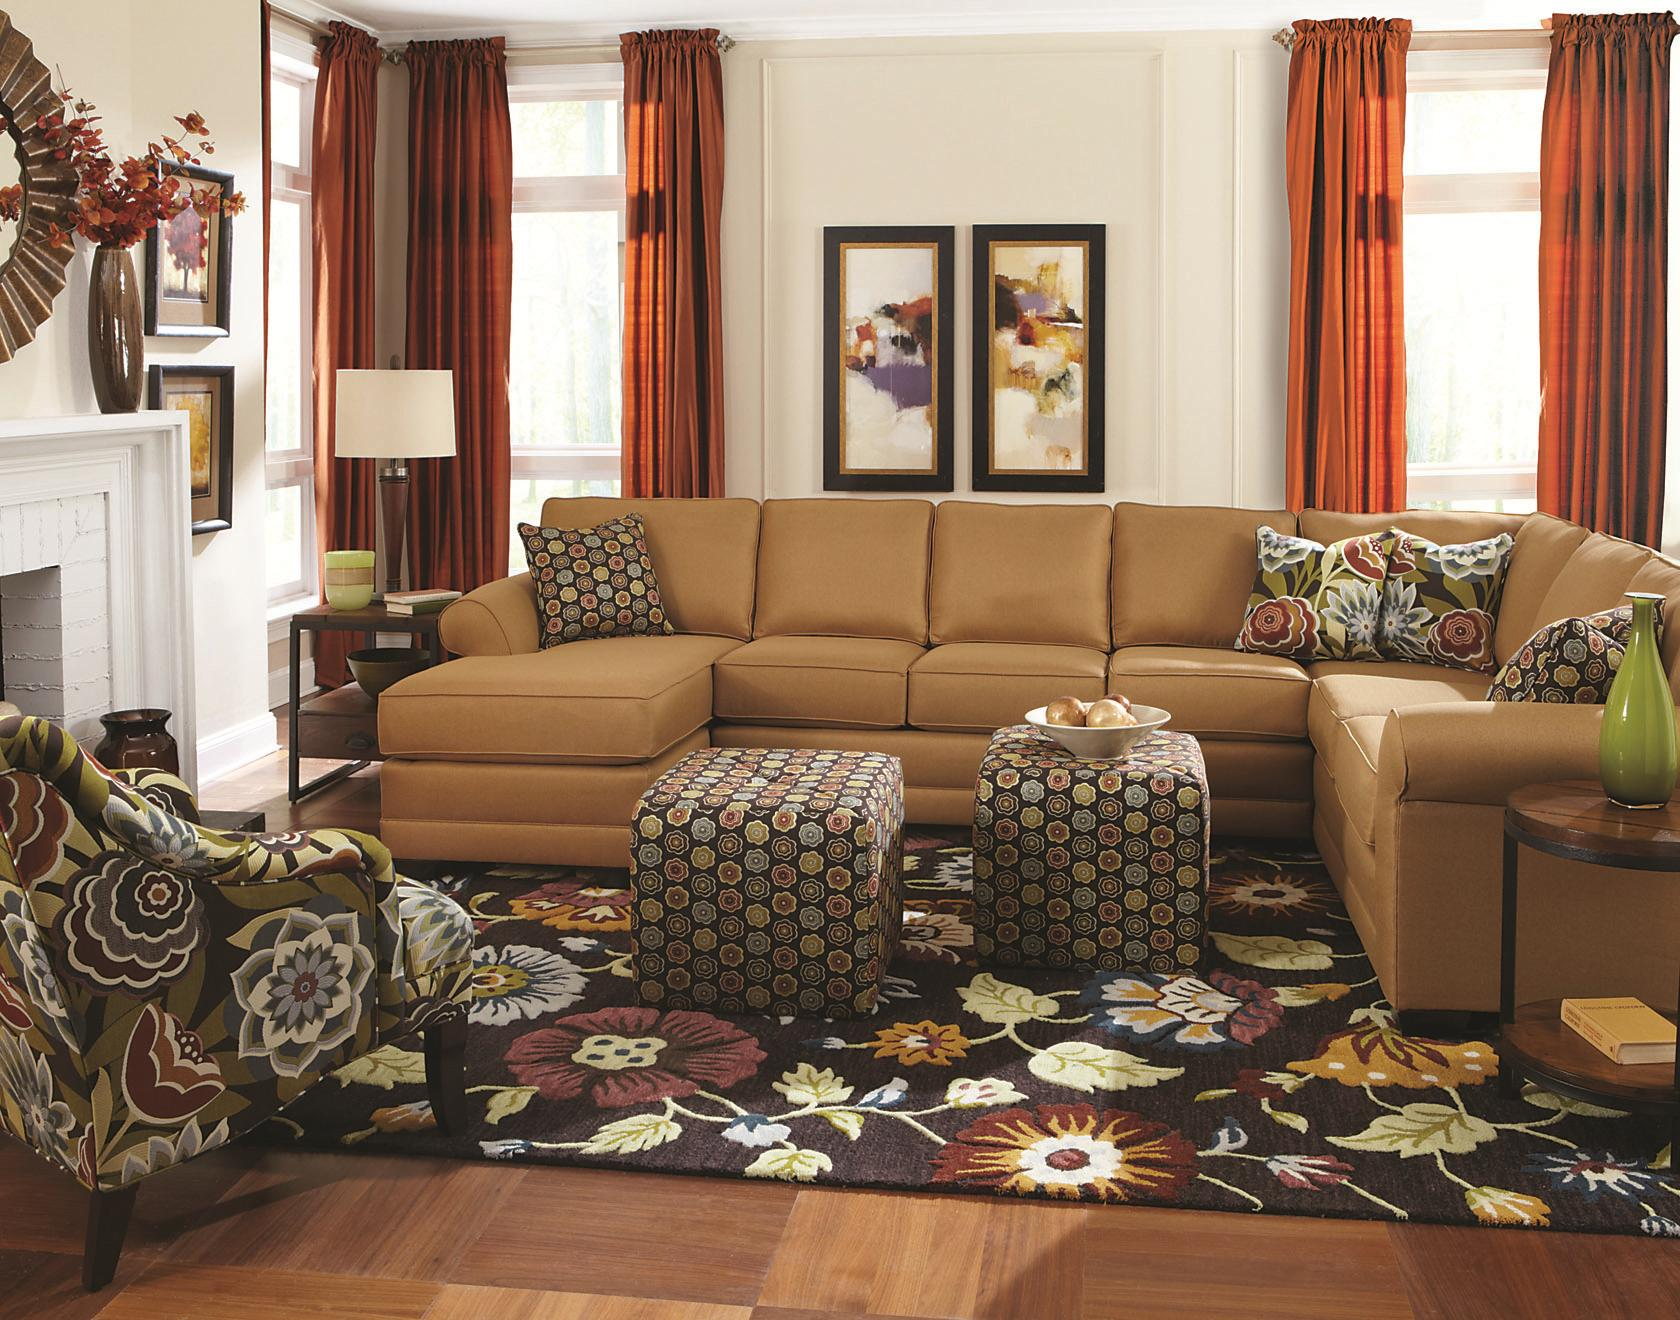 England Brantley 6 Seat Sectional With Chaise Furniture